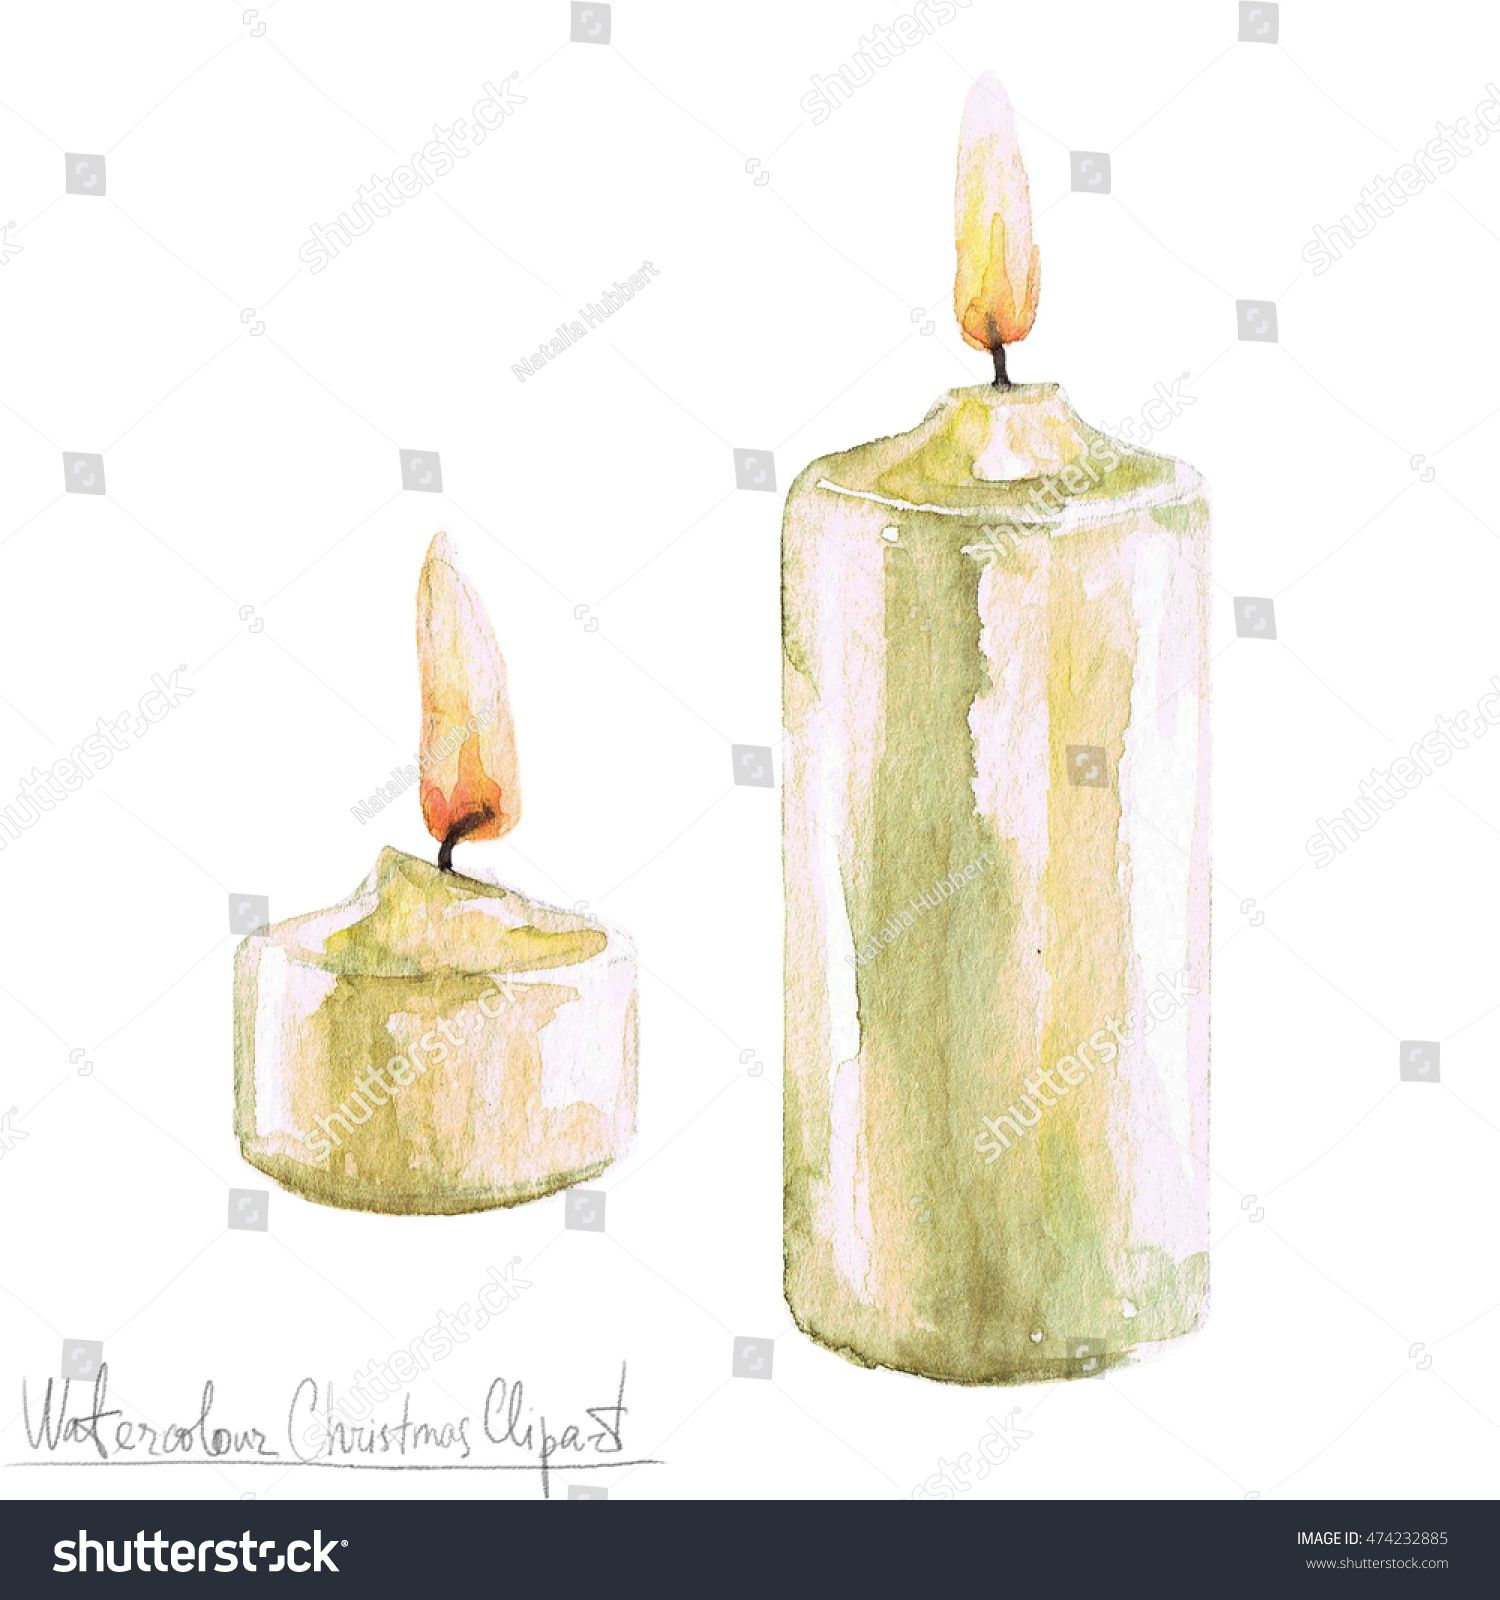 Candles clipart watercolor. Christmas yahoo image search